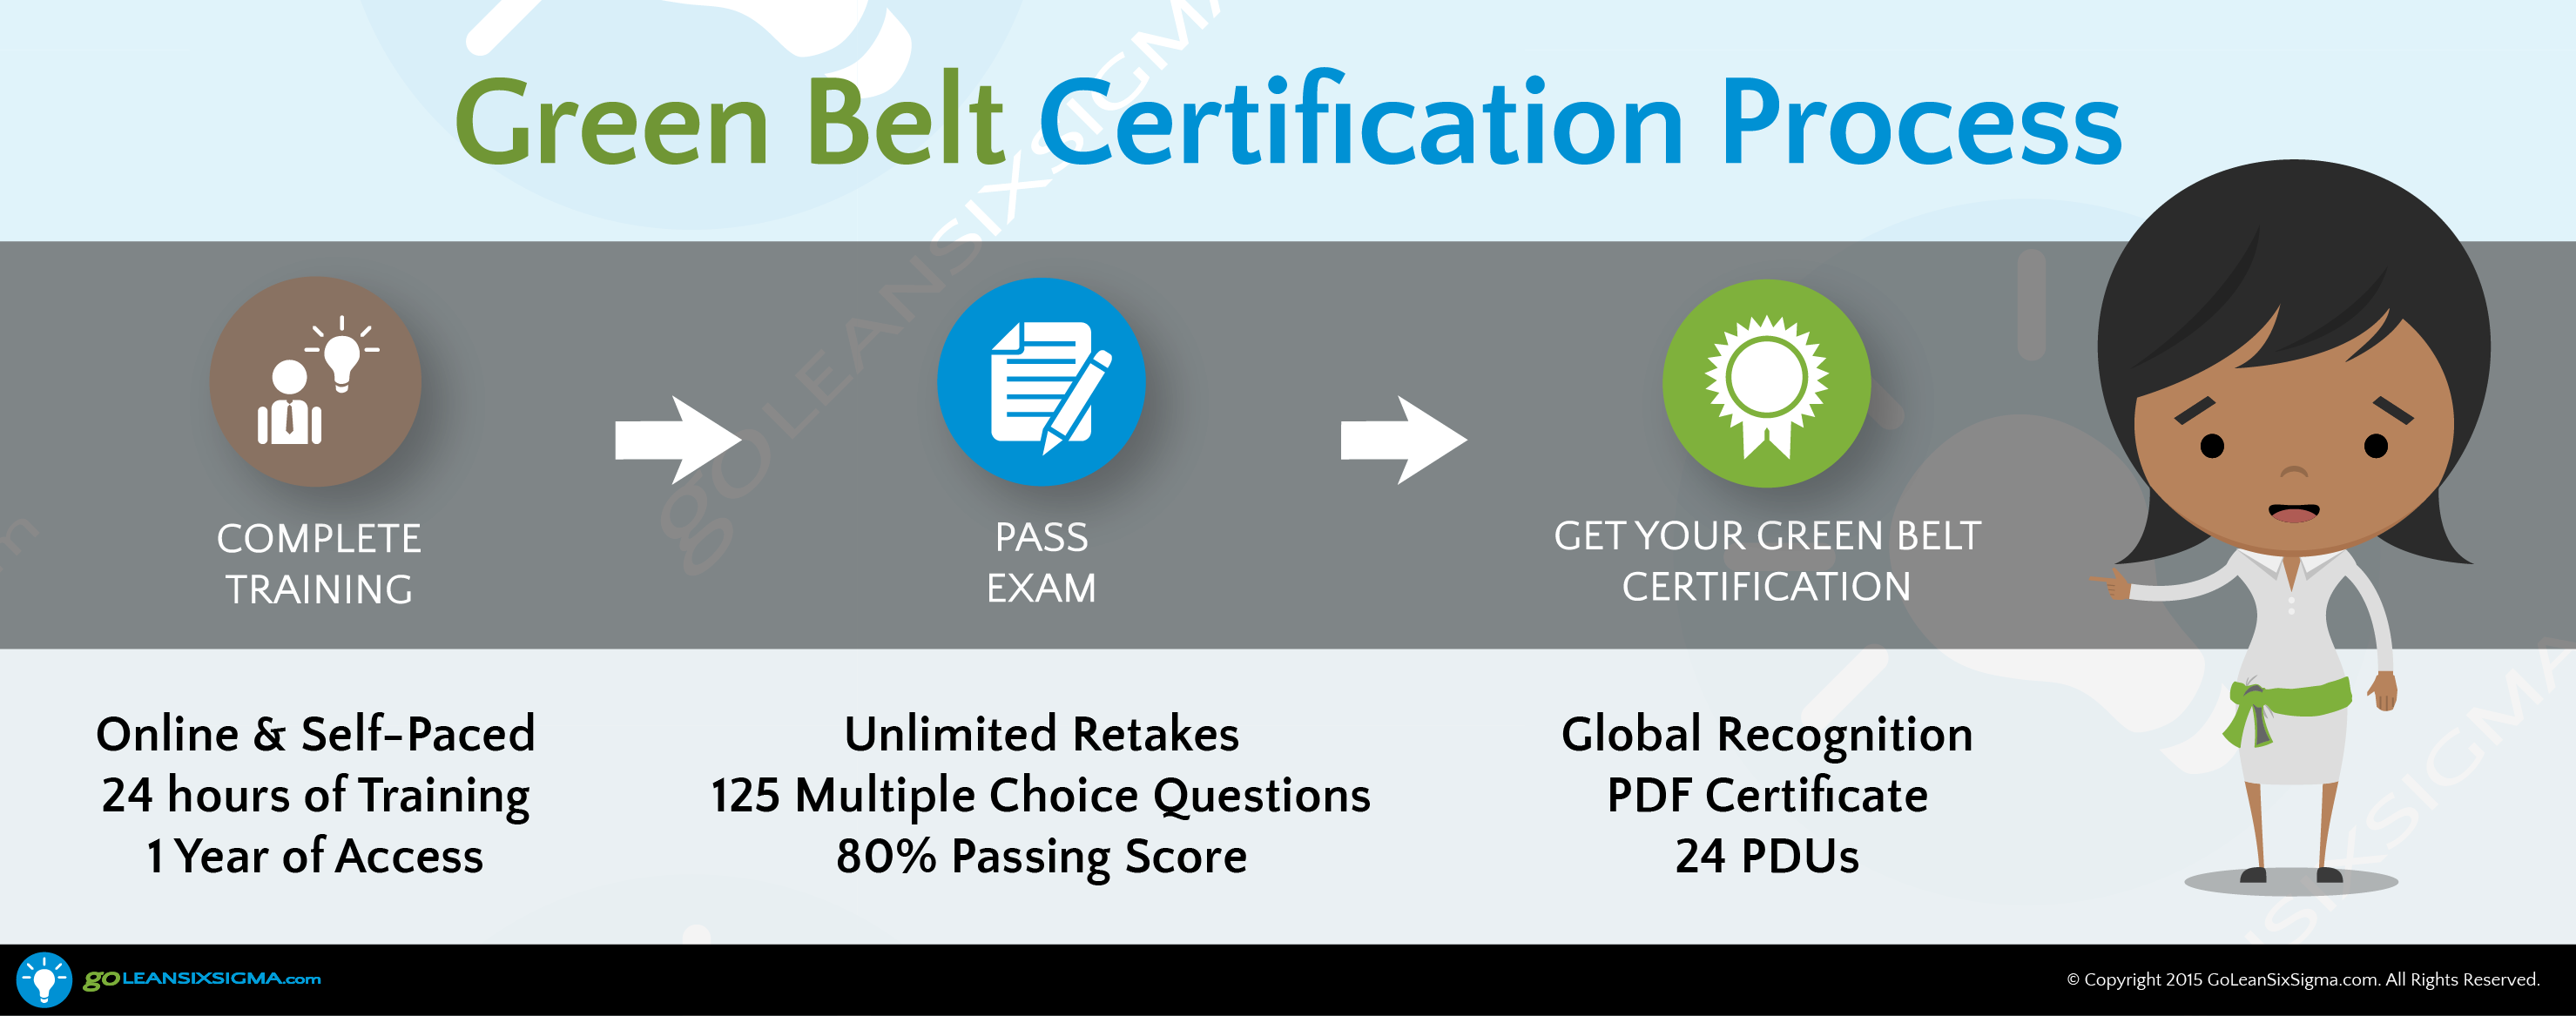 GLSS CertificationProcess Green Belt Cert Pro